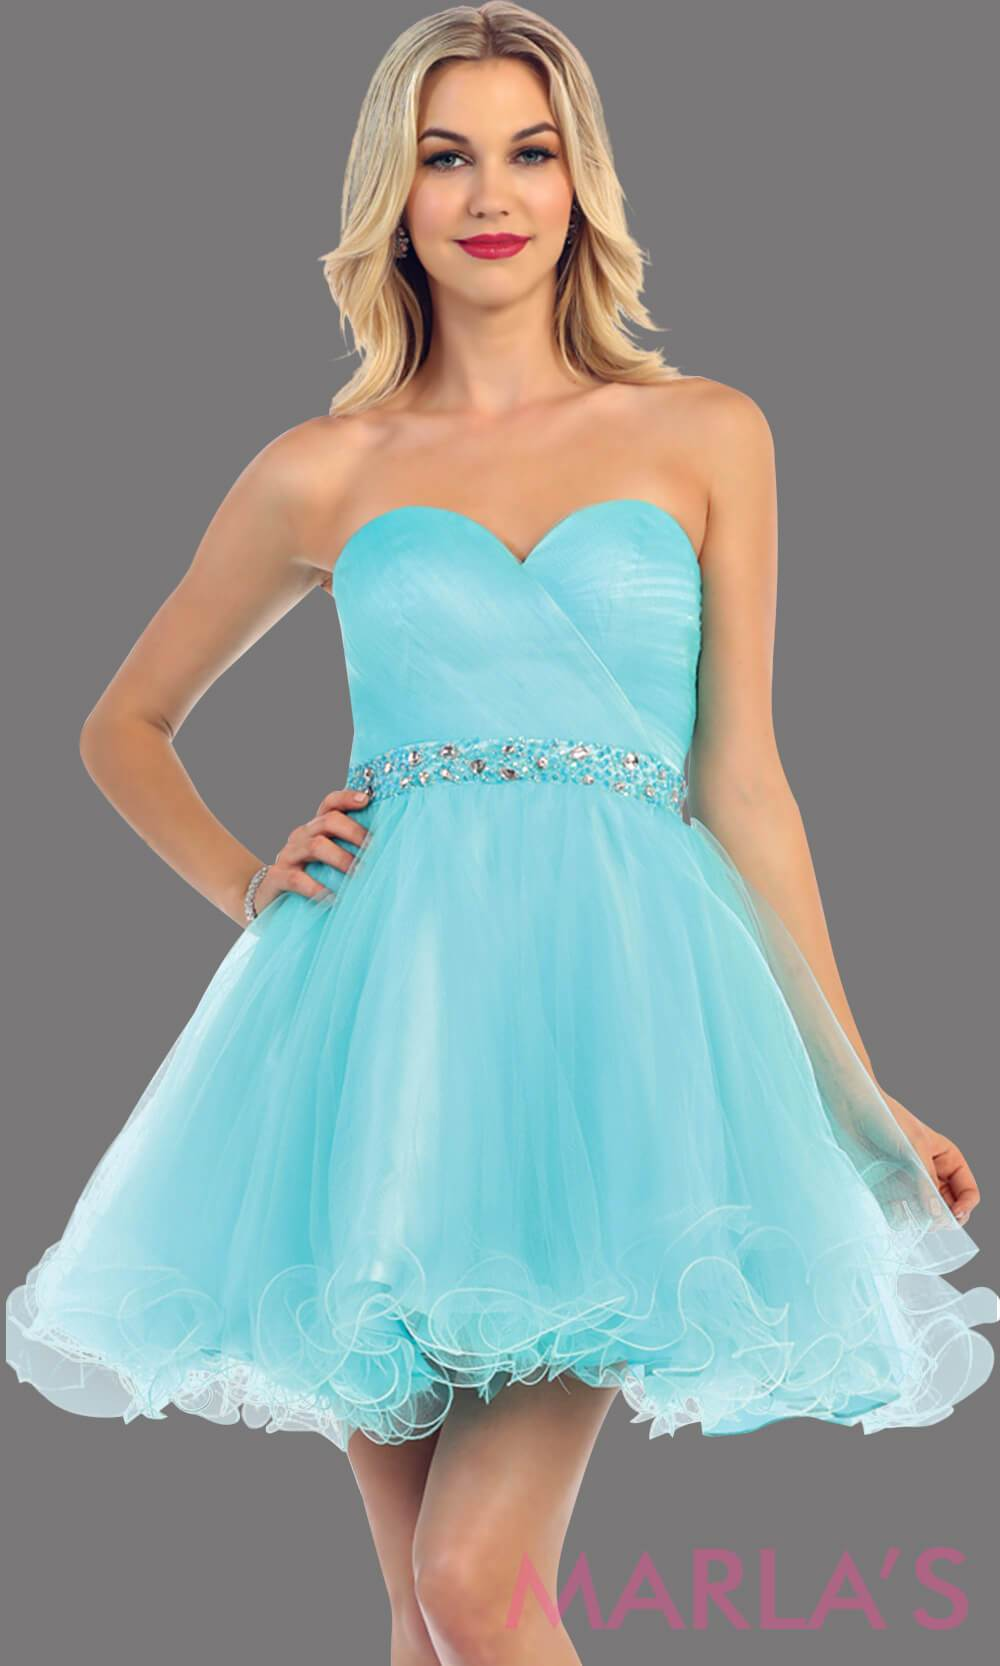 Short strapless puffy aqua dress with rhinestone belt. It has a corset back. This is a perfect light blue grade 8 graduation dress, aqua damas dress, or sweet 16 dress. Available in plus sizes